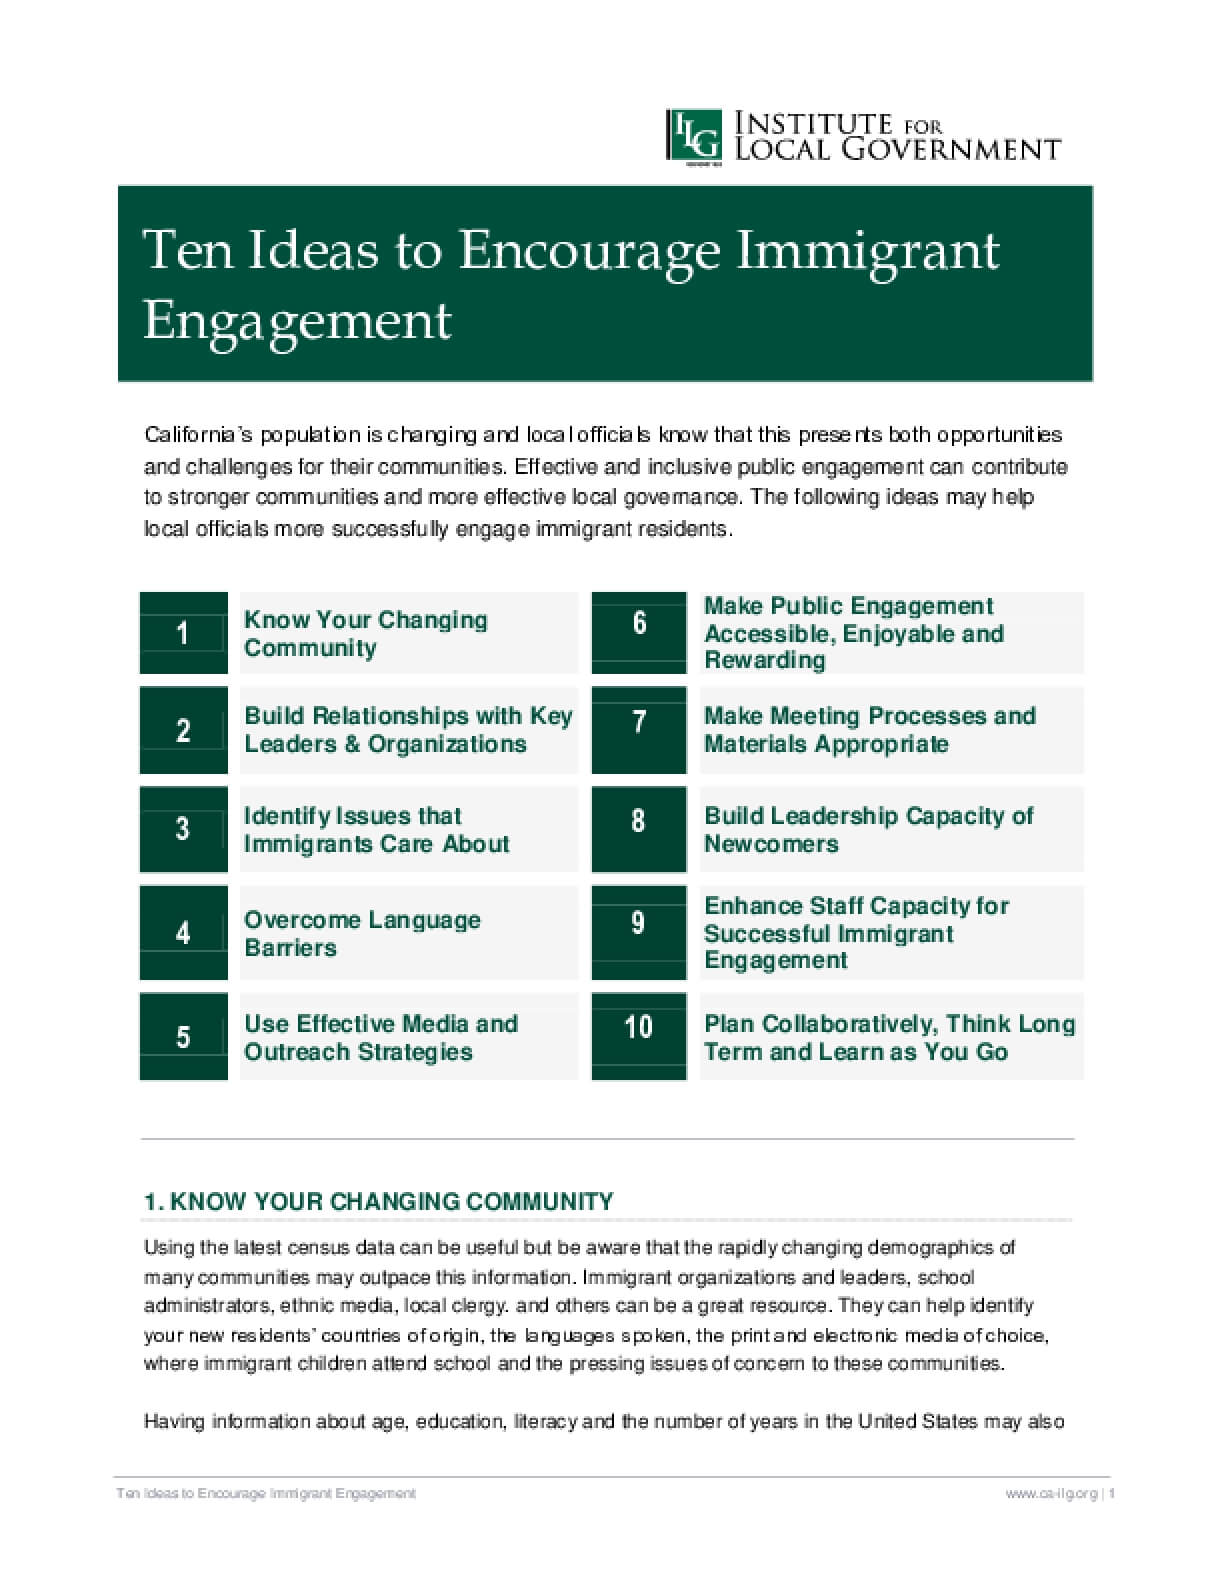 Ten Ideas to Encourage Immigrant Engagement